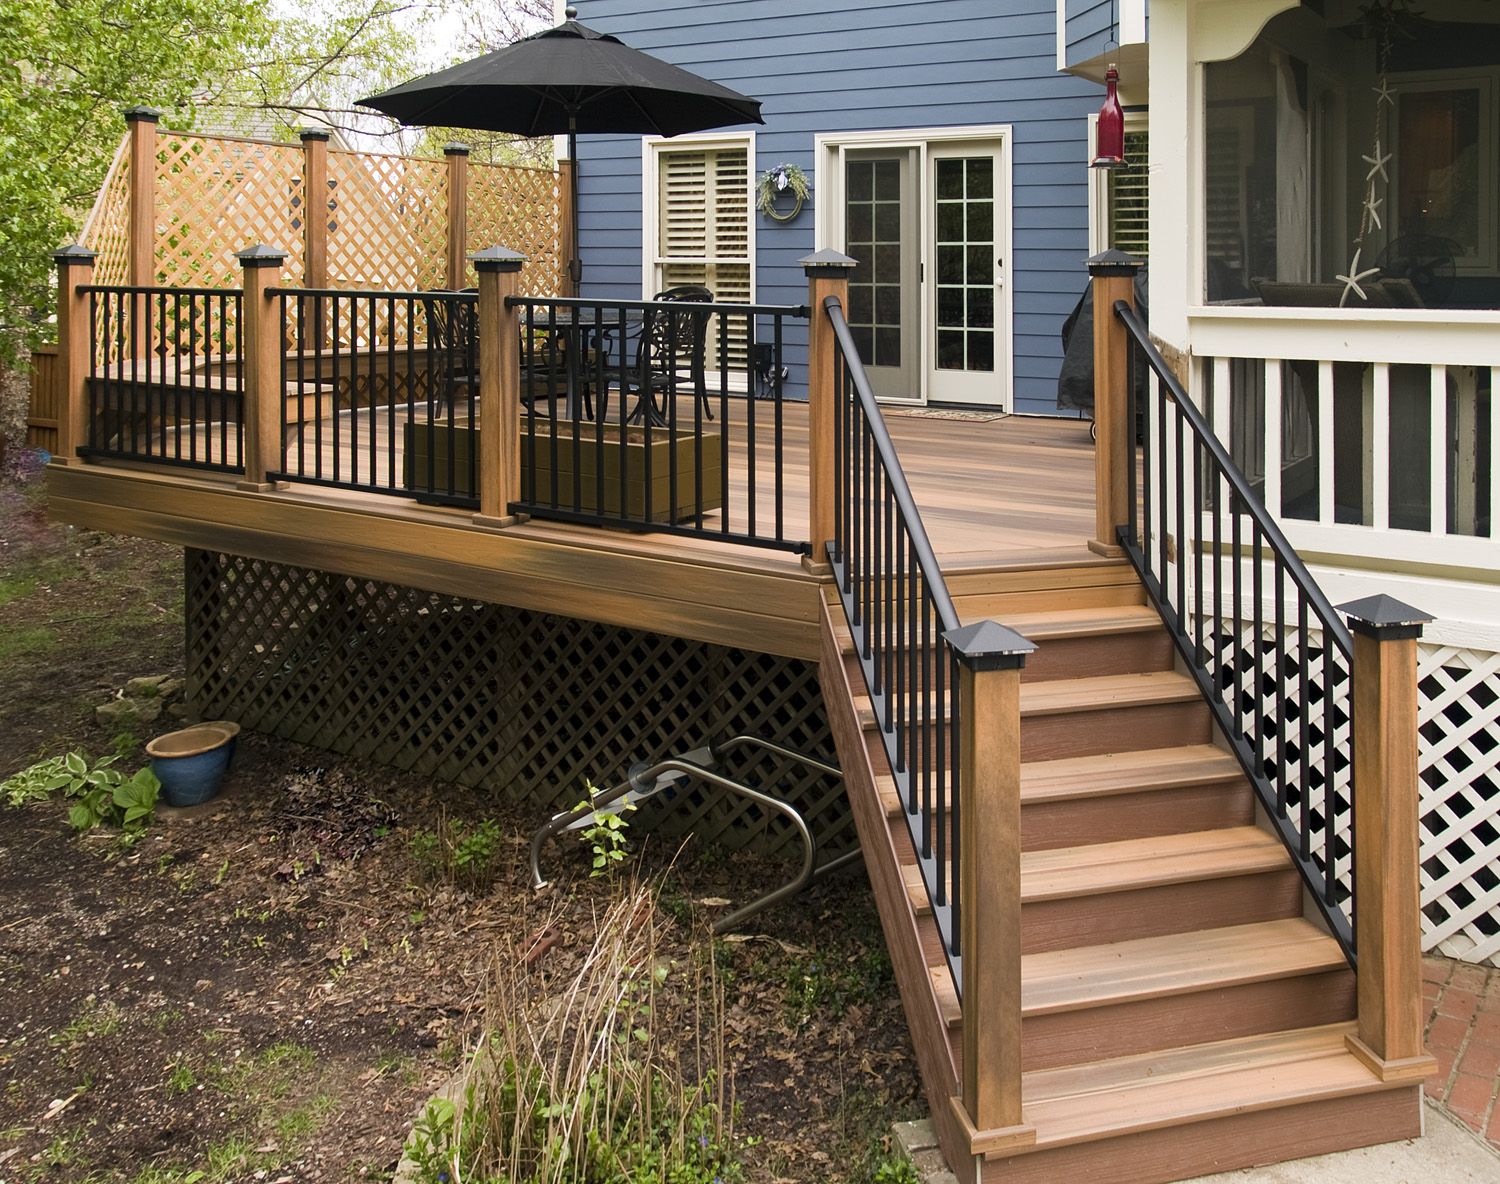 Veranda Composite Decking | Veranda Deck Railing Systems | Veranda Composite Decking Colors